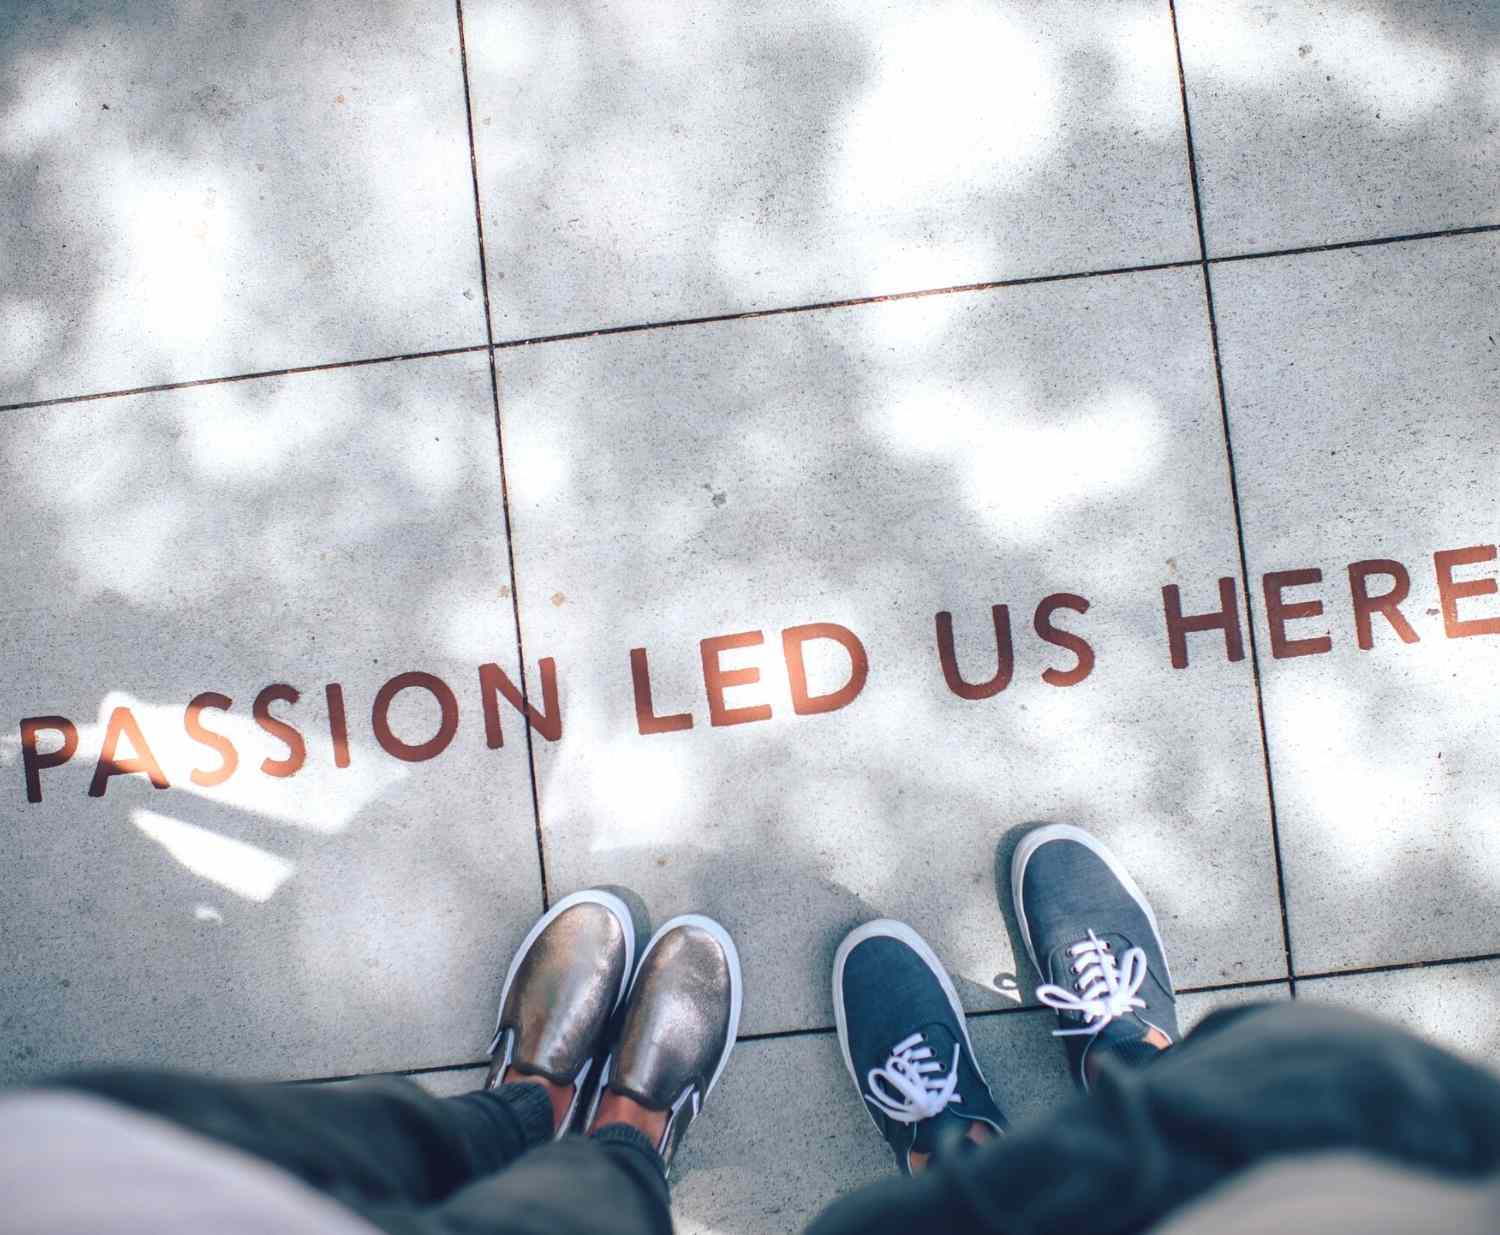 """Image of sidewalk with words """"Passion led us here"""""""